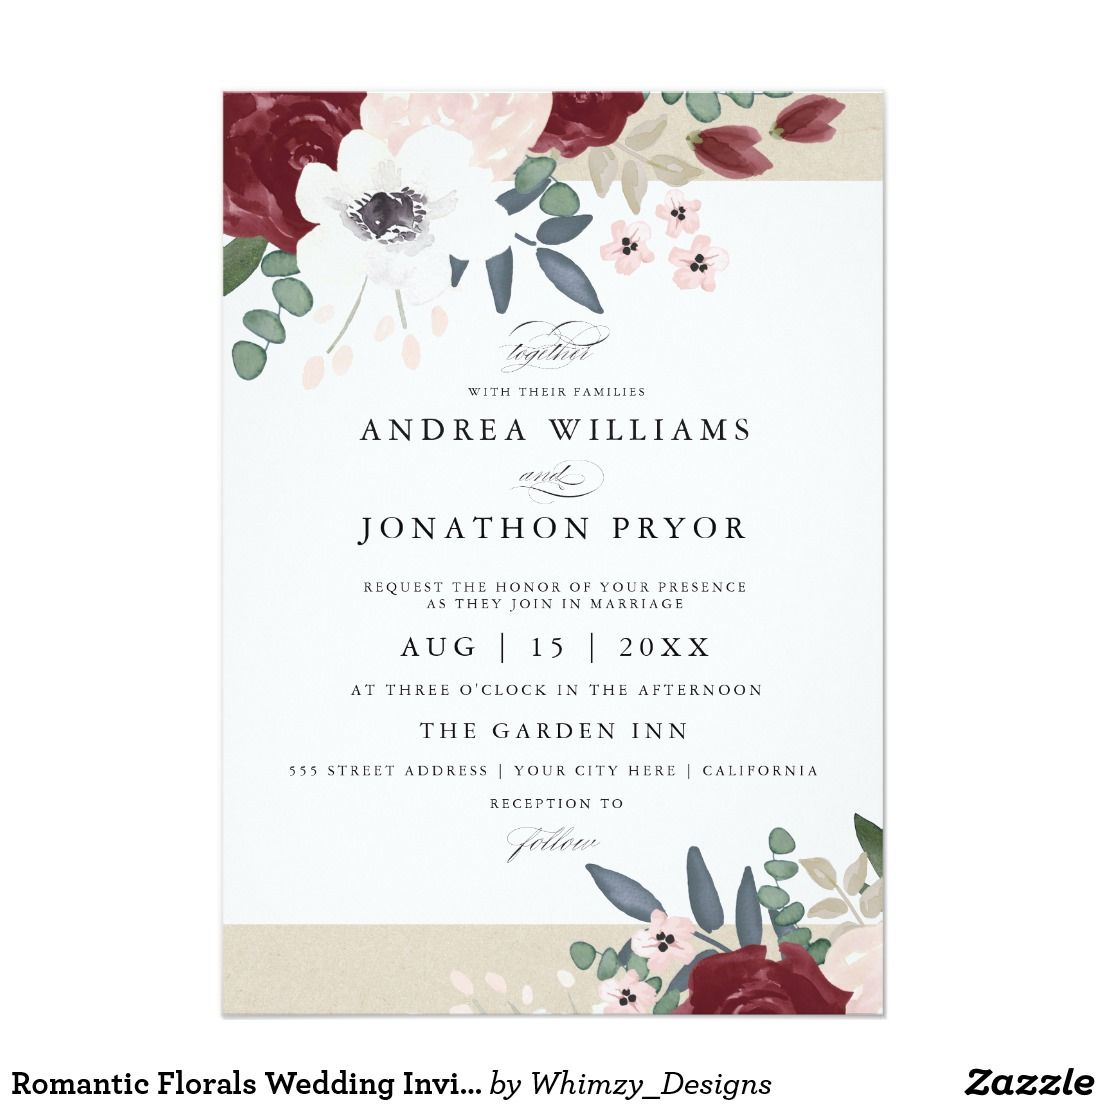 Romantic Florals Wedding Invitation Florals Romantic And Weddings